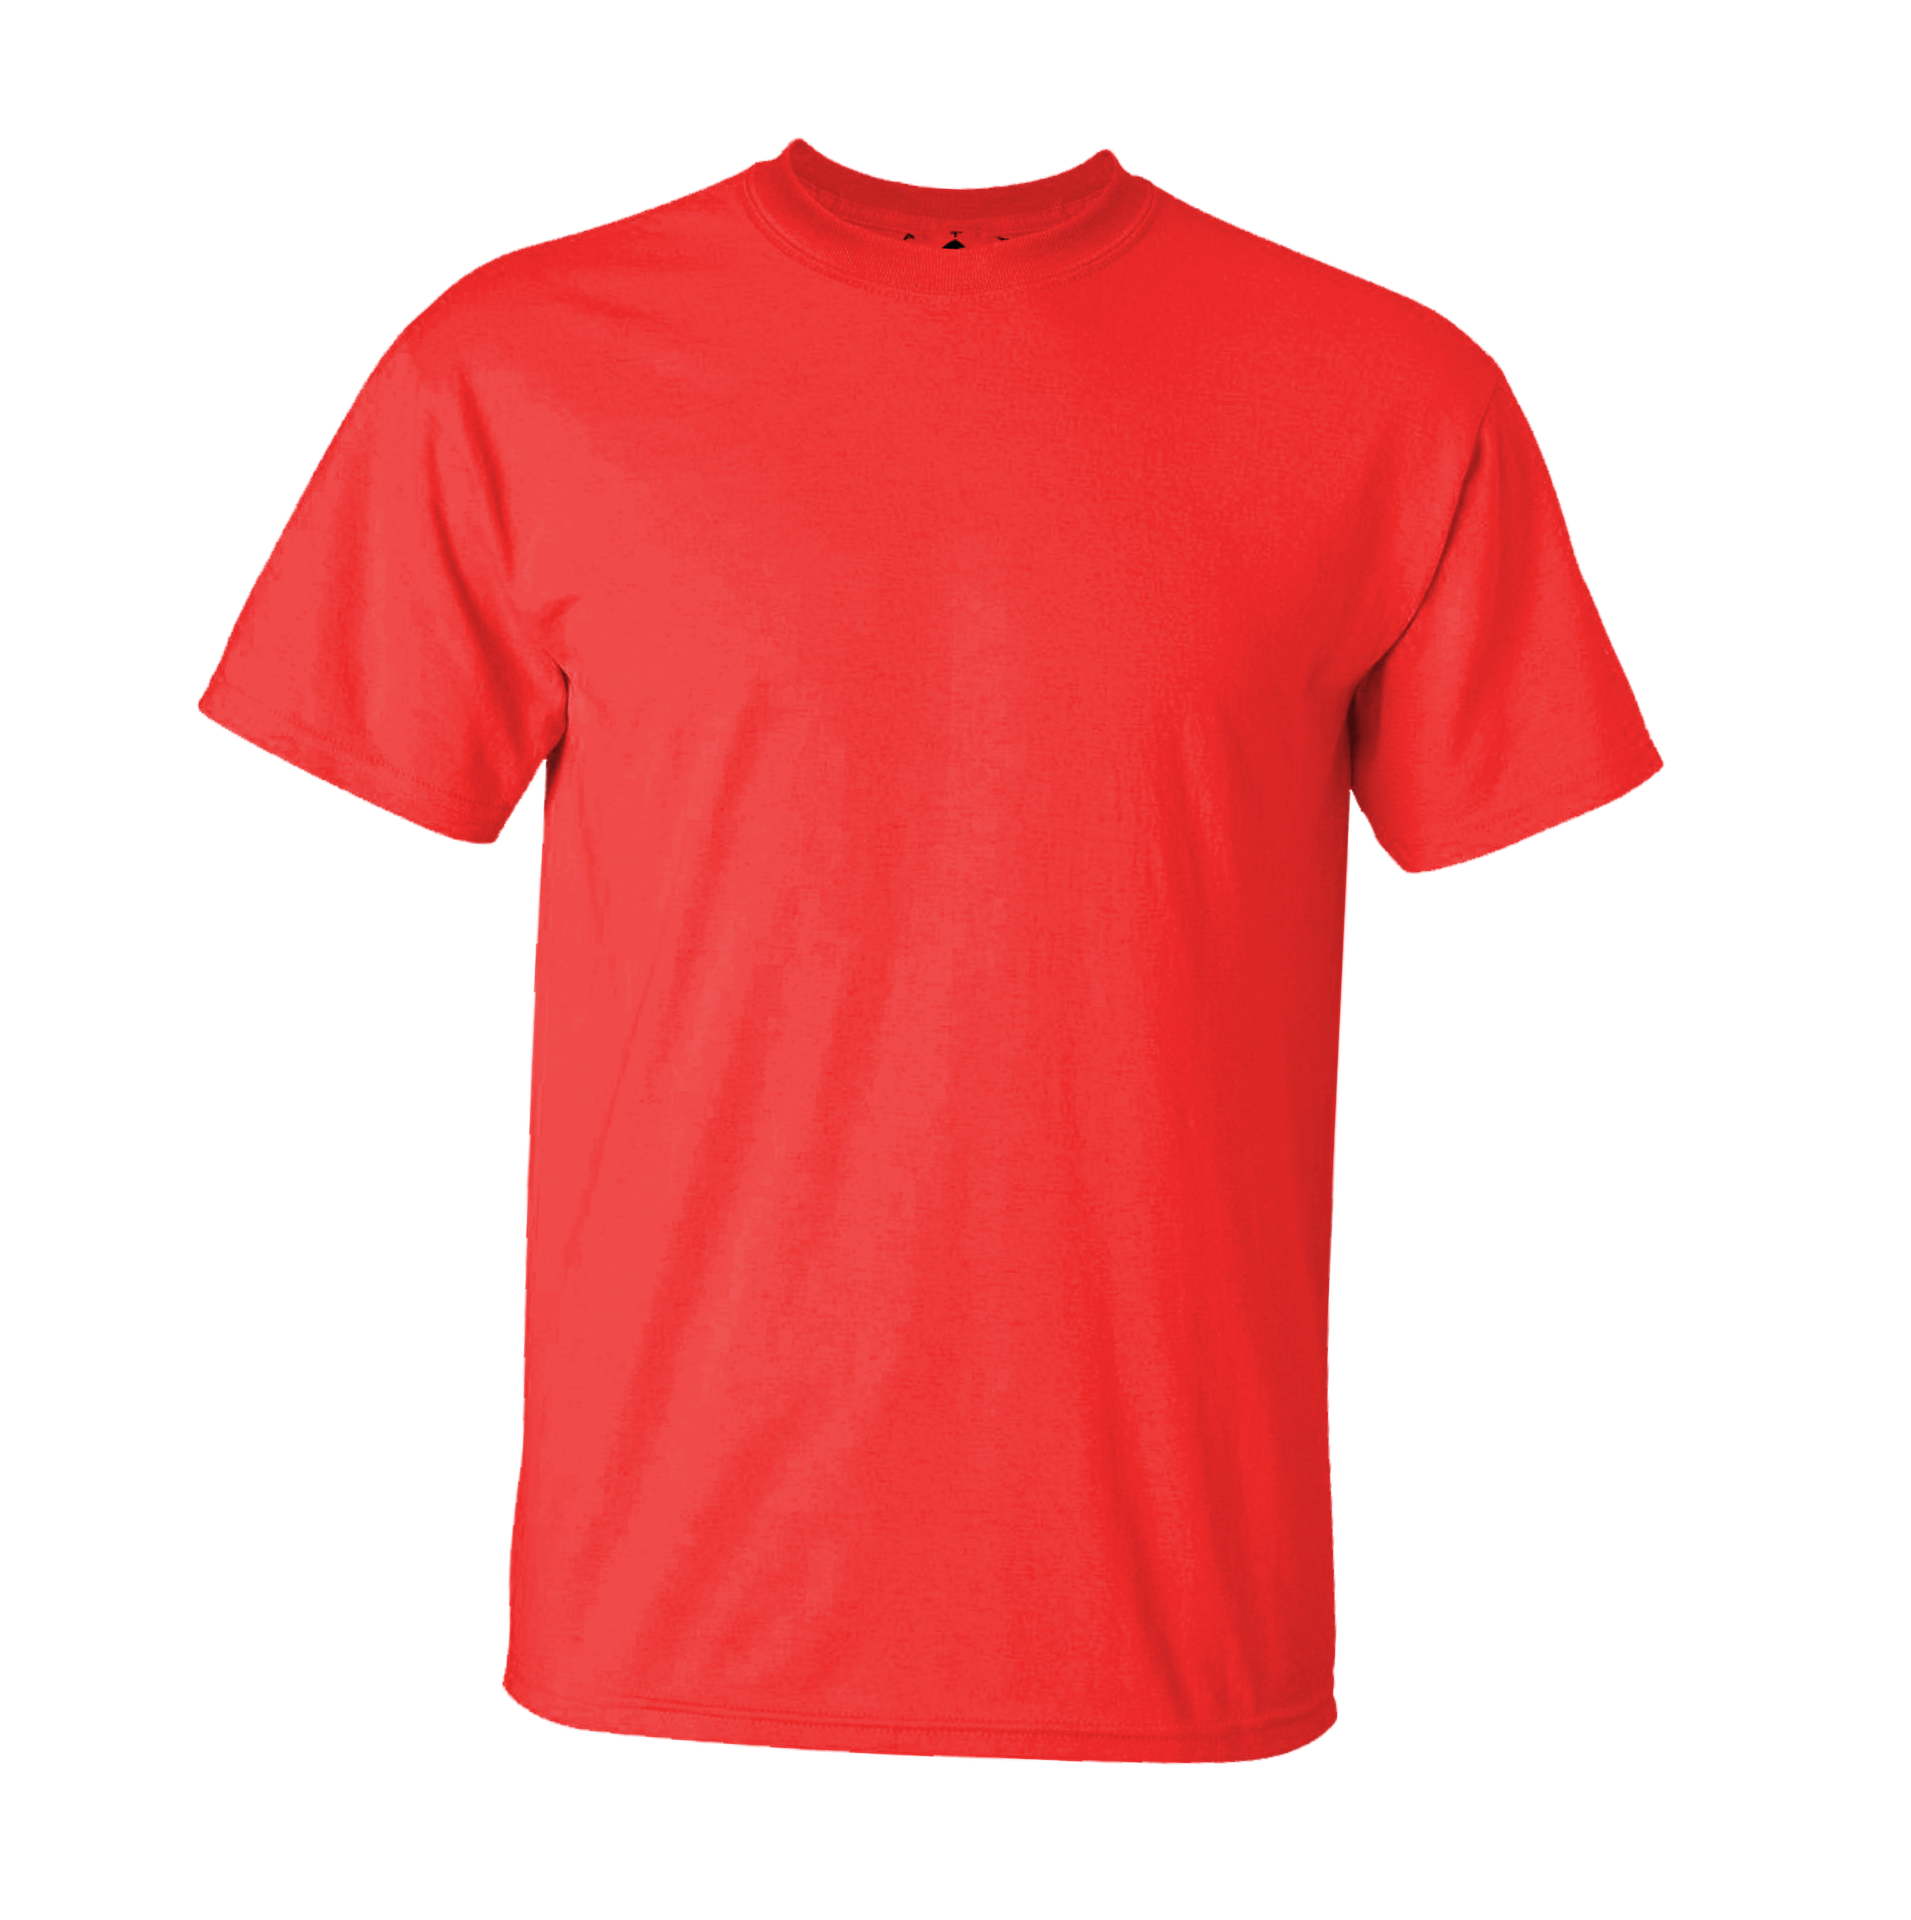 How To Customize T Shirts For Business Purpose In Tucson Tech Update